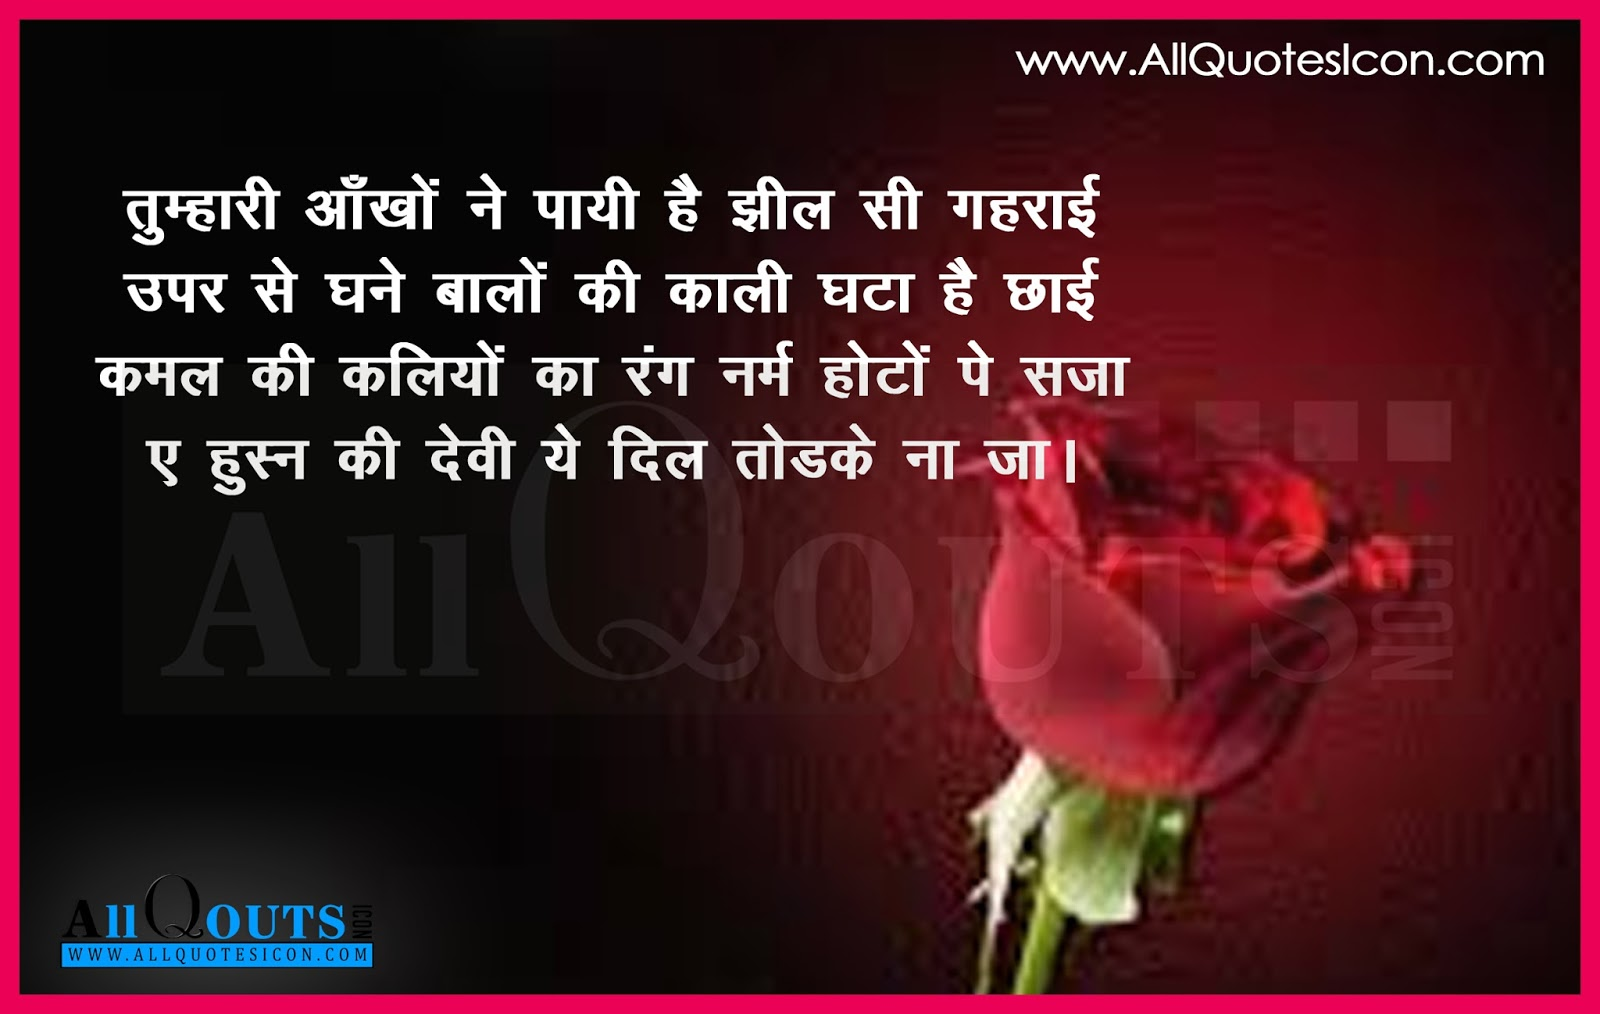 Best Love Thoughts And Quotes In Hindi Wwwallquotesiconcom